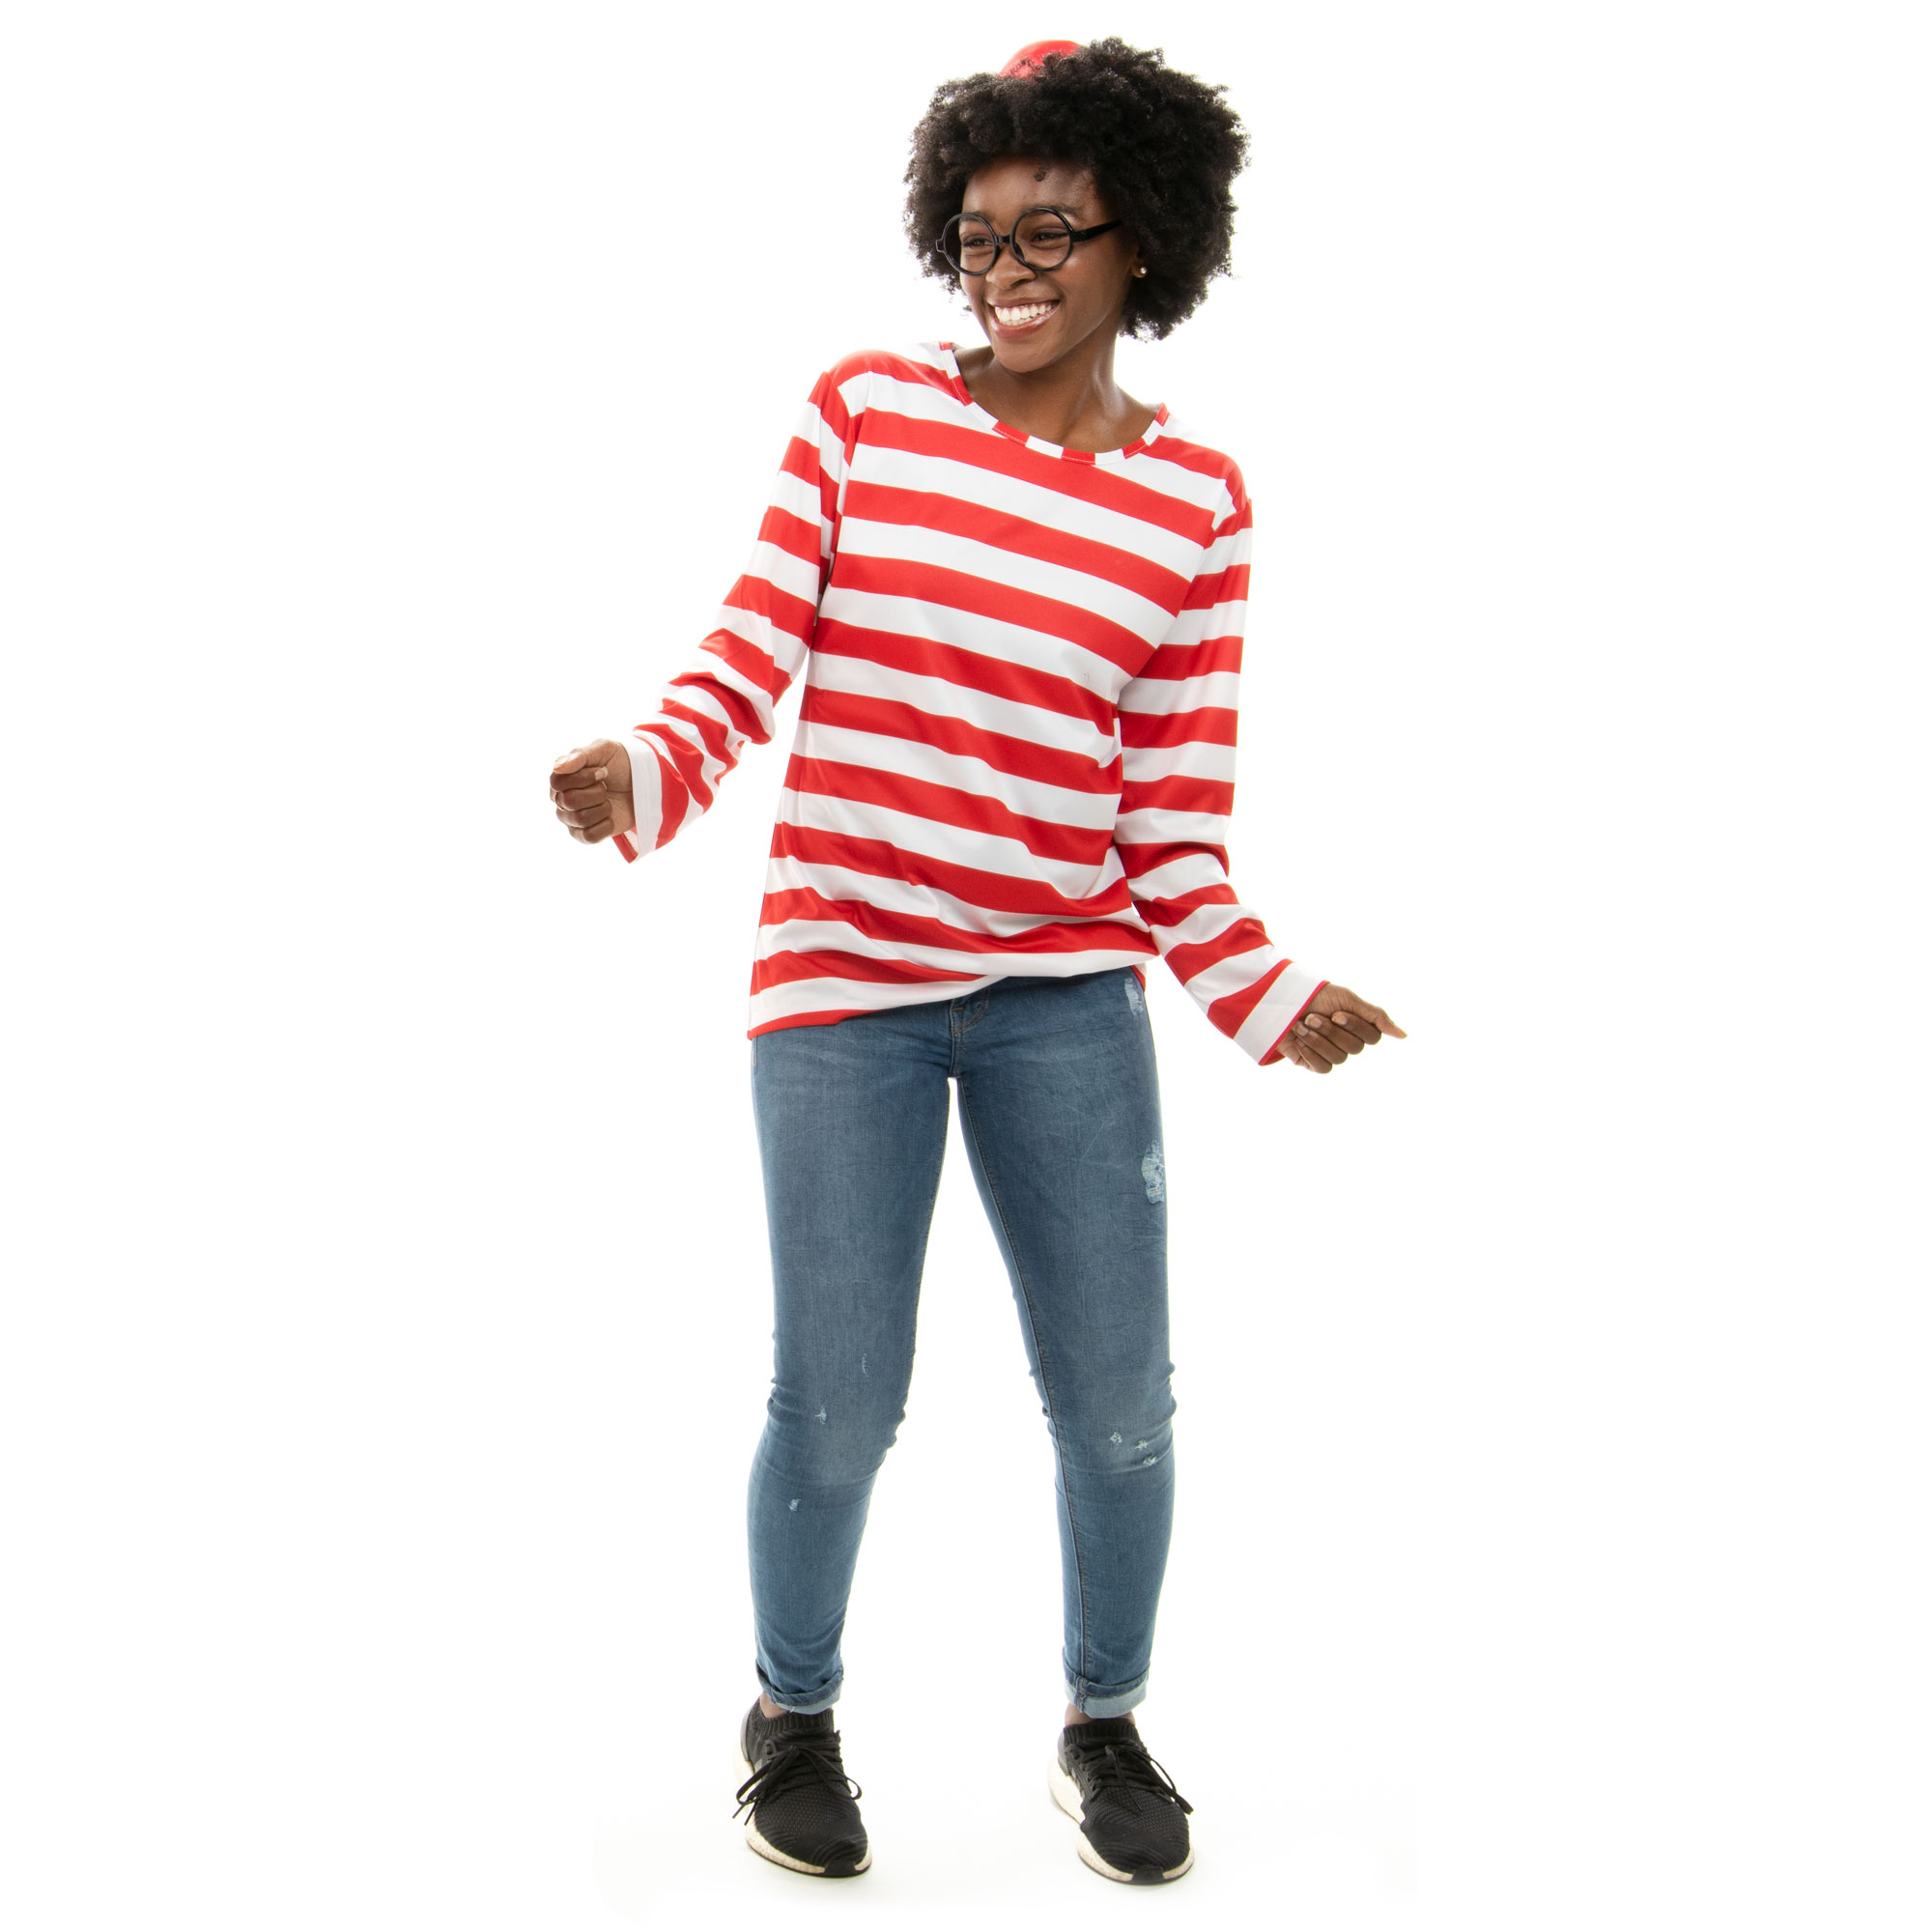 Where's Wally Halloween Costume - Women's Cosplay Outfit, M